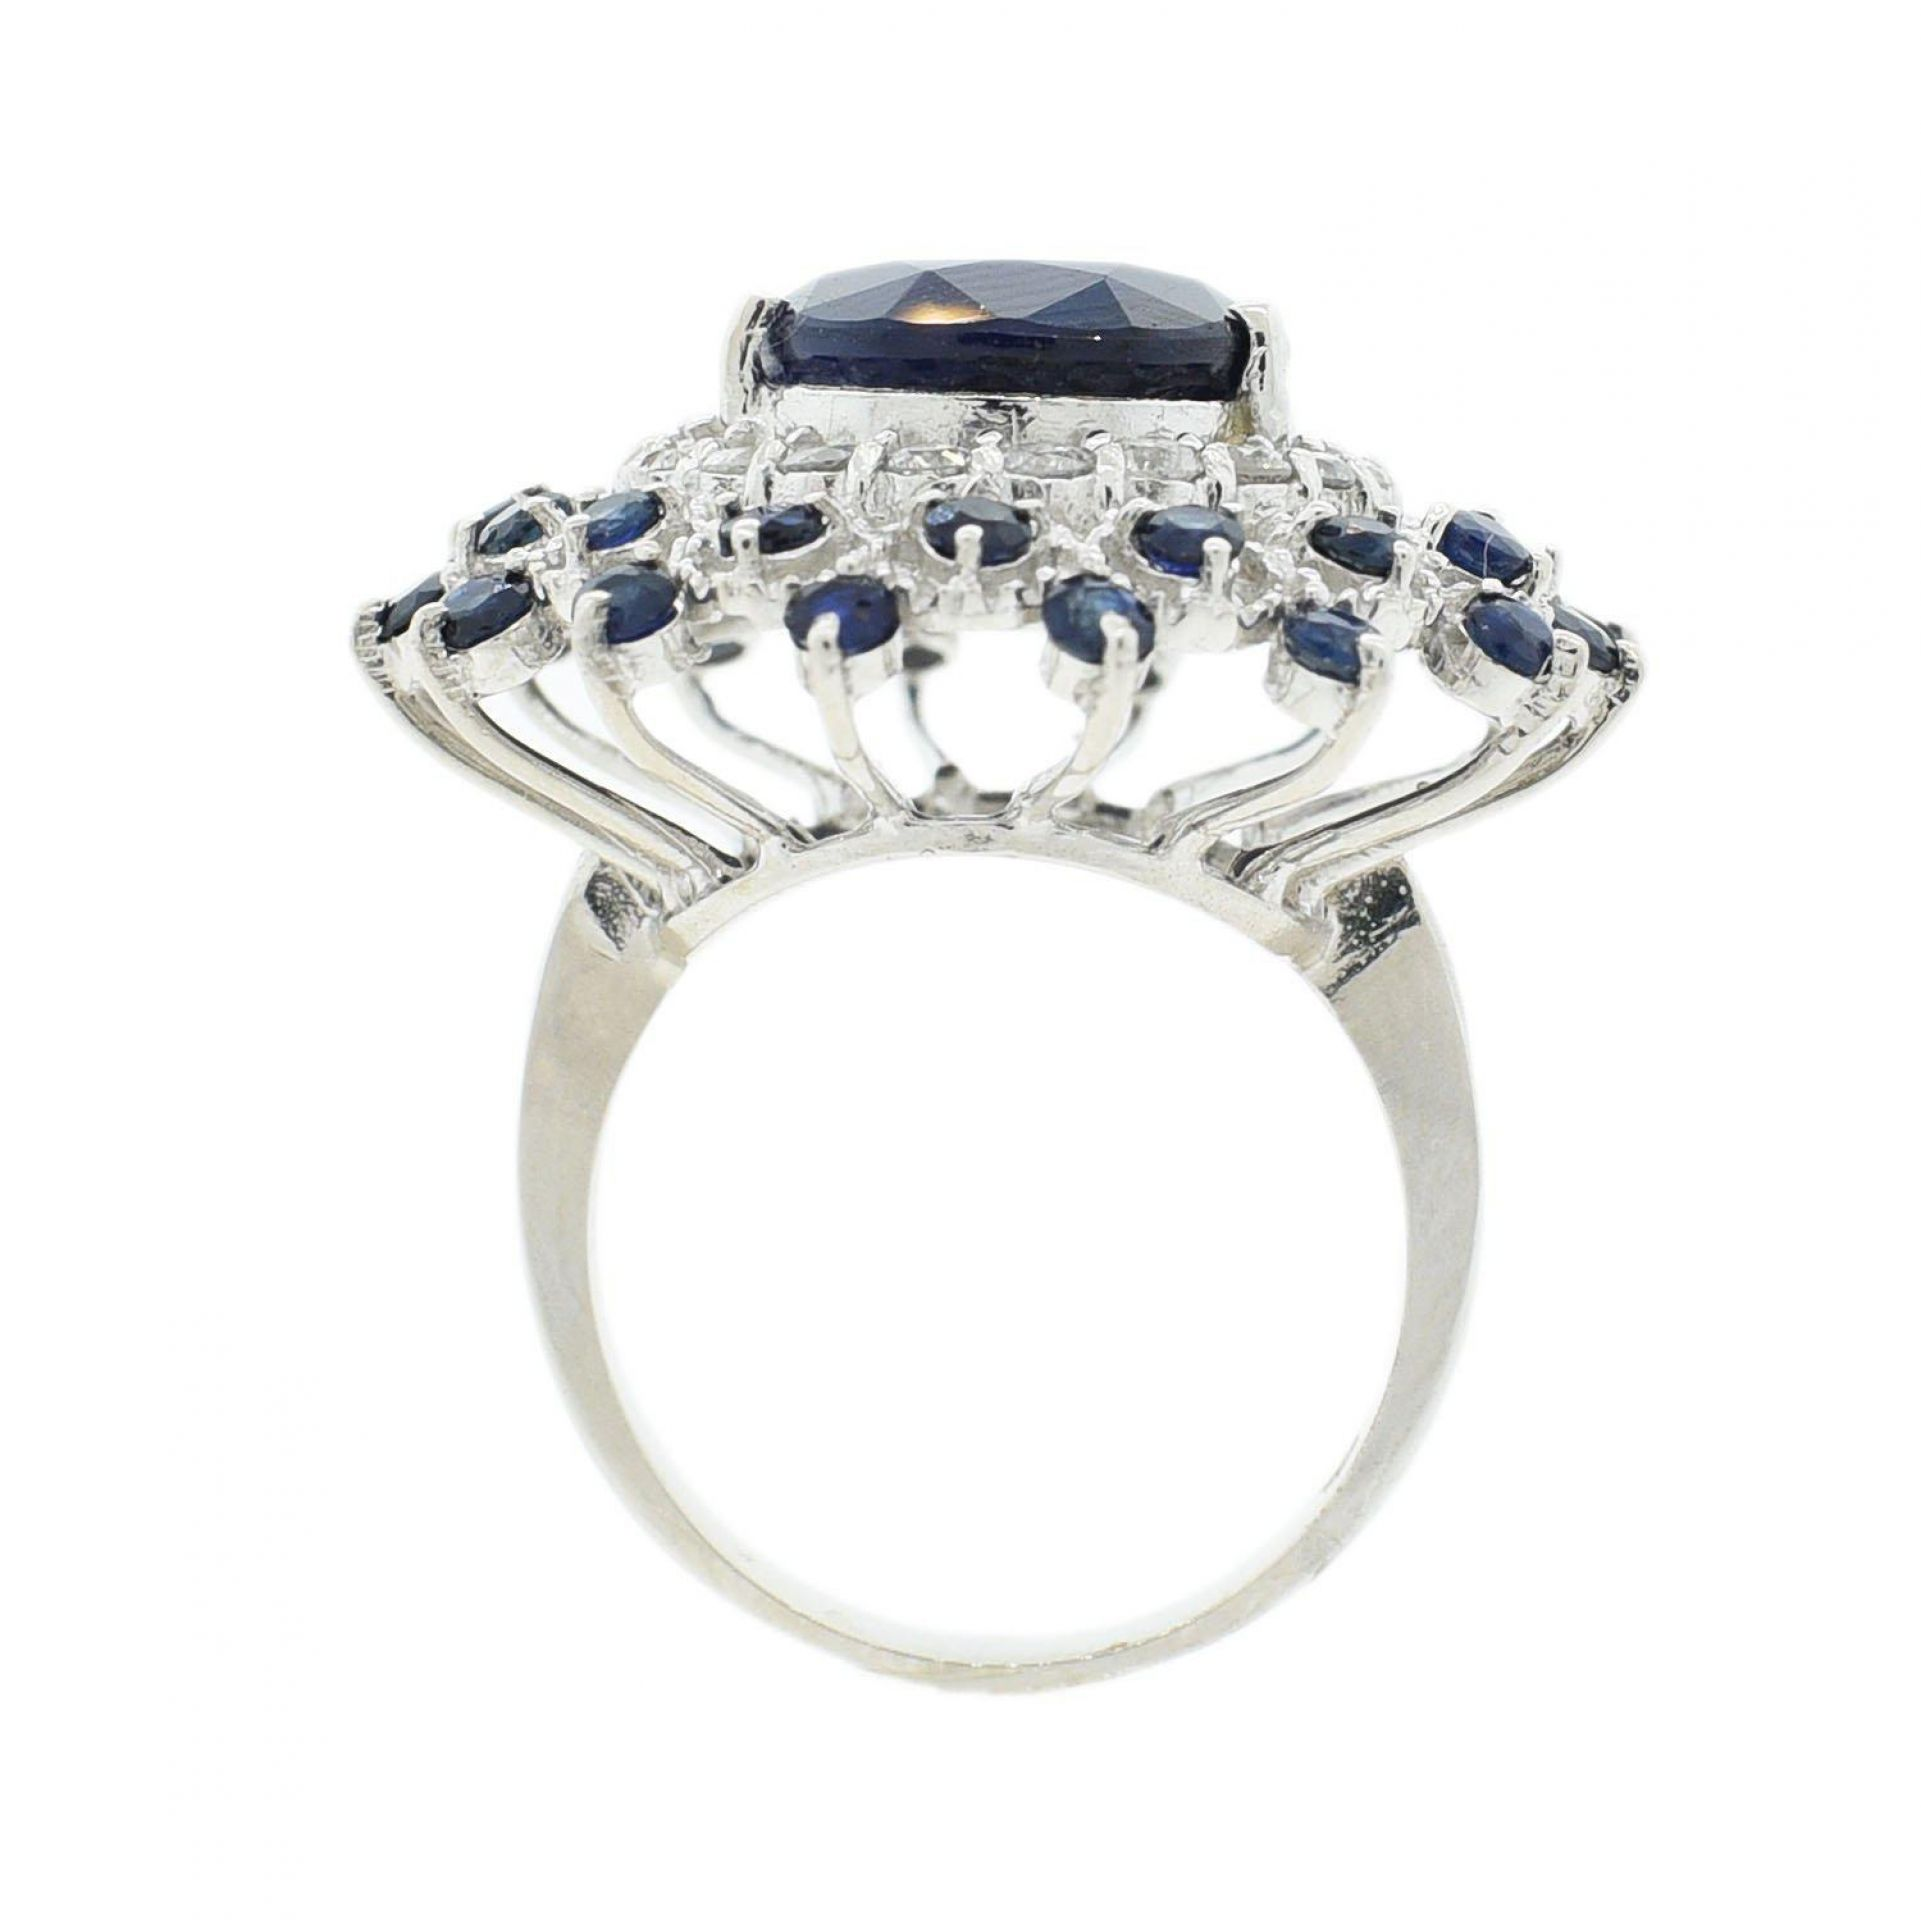 12.85ctw Blue Sapphire and 0.84ctw Diamond 14K White Gold Ring